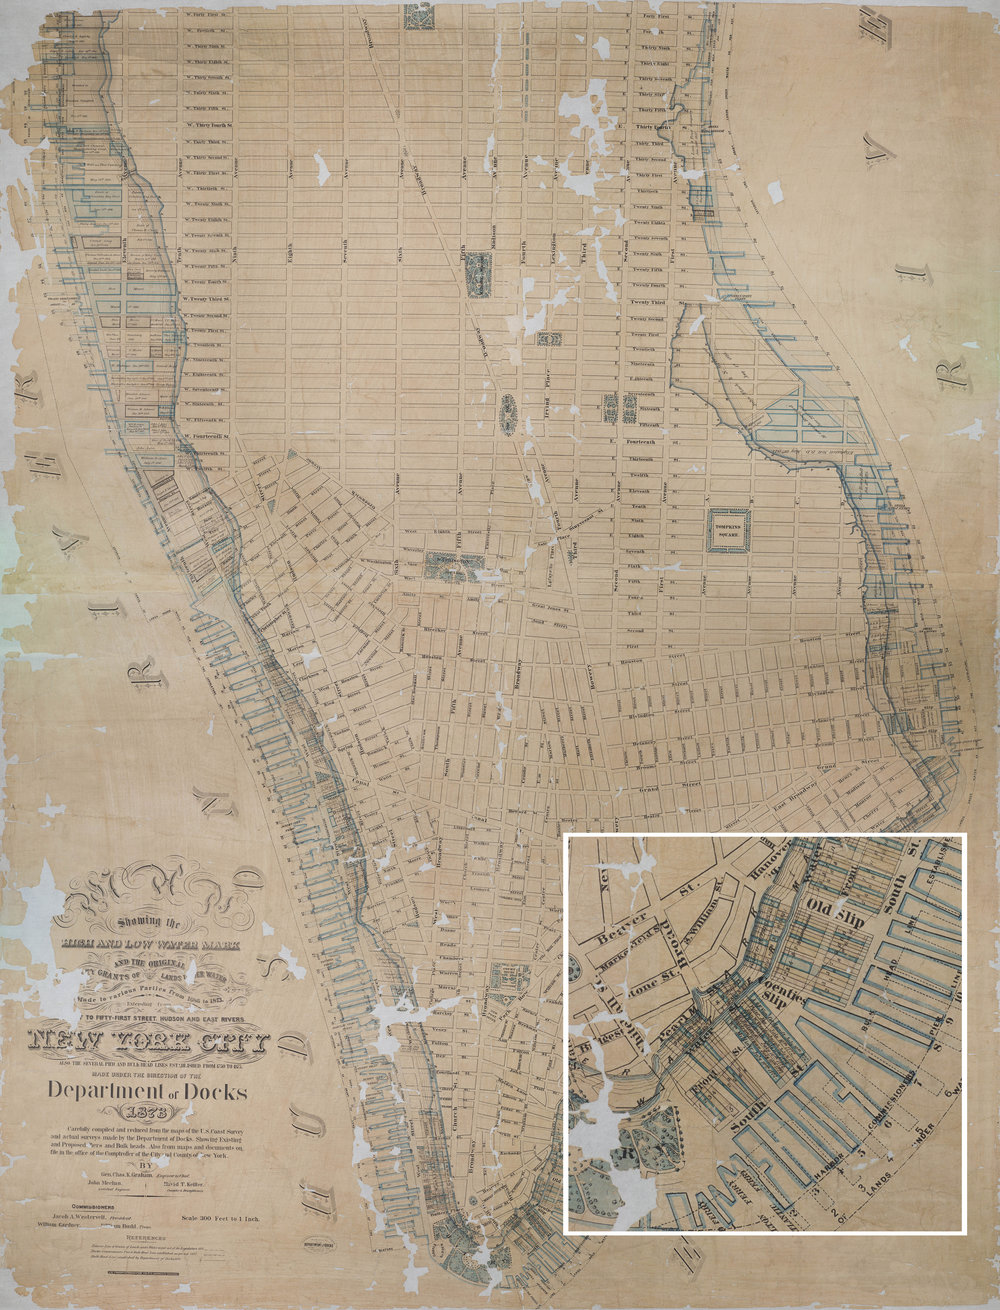 The Department of Docks drawing with magnified section showing piers and the old water lines of the East River